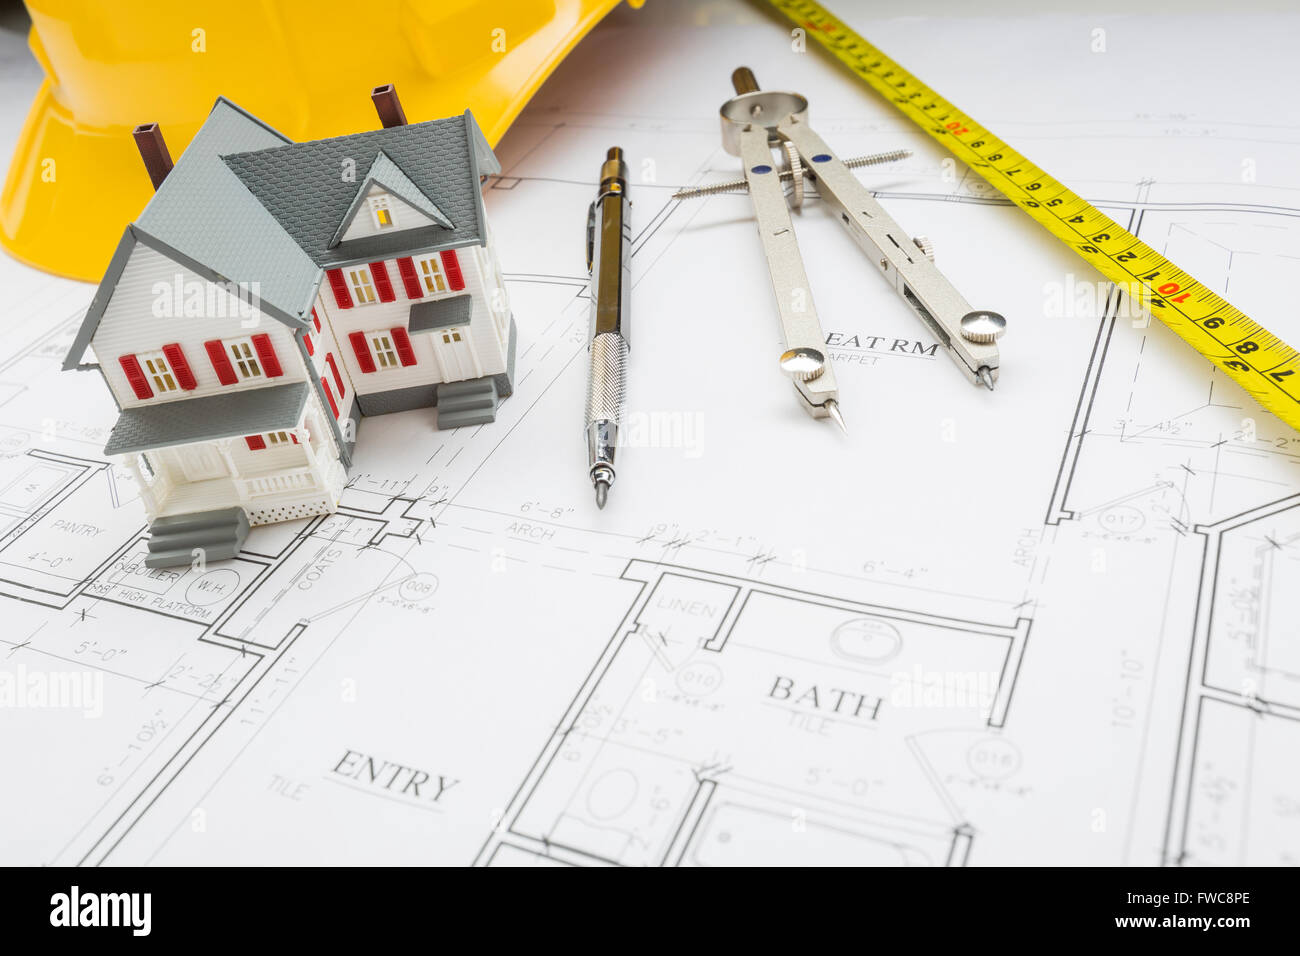 Peachy Model Home Measuring Tape Hard Hat Pencil And Compass Resting On Wiring Digital Resources Dimetprontobusorg